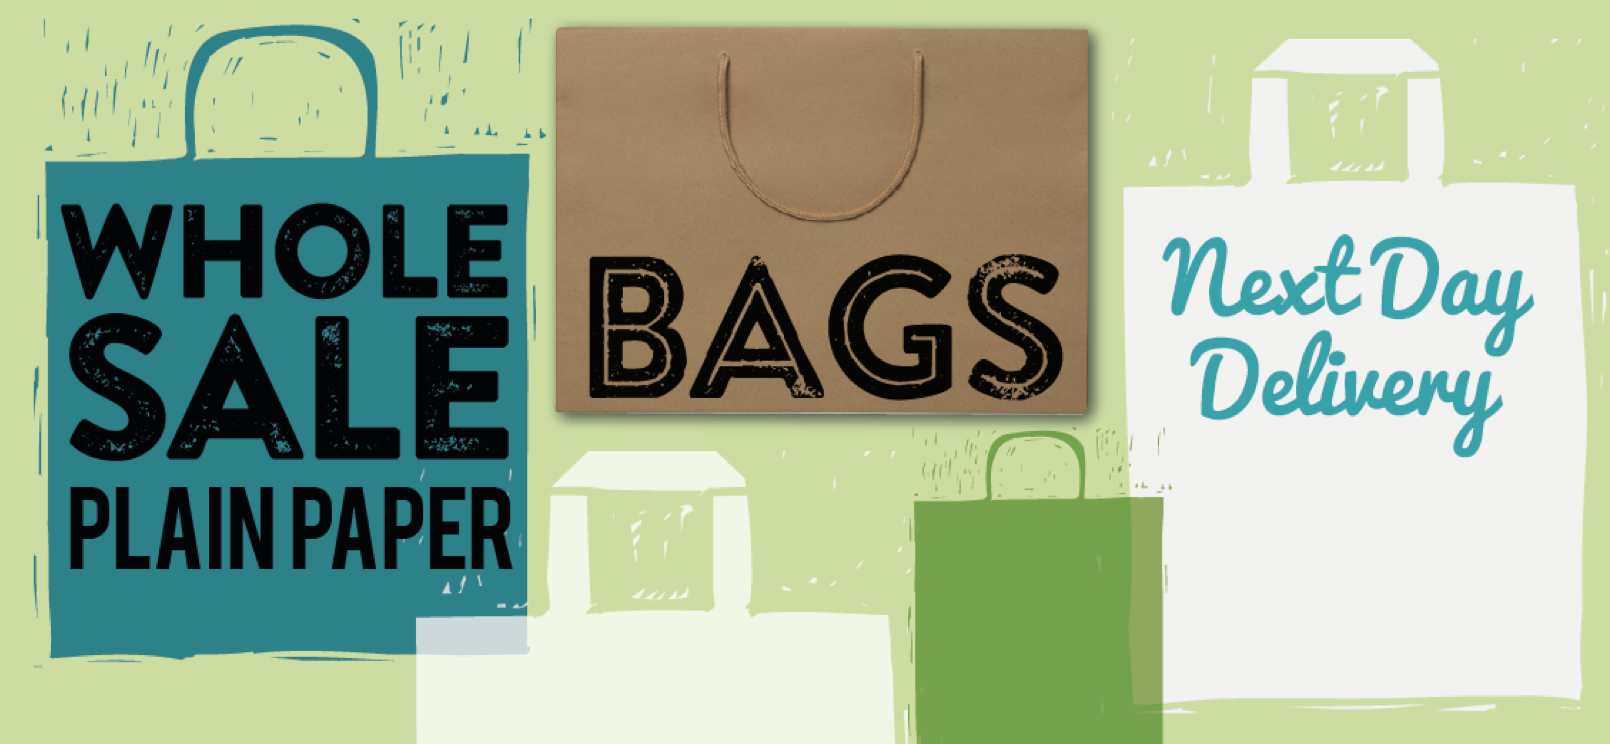 Paper Bags Wholesale   Next Day Delivery   Paper Bag Co